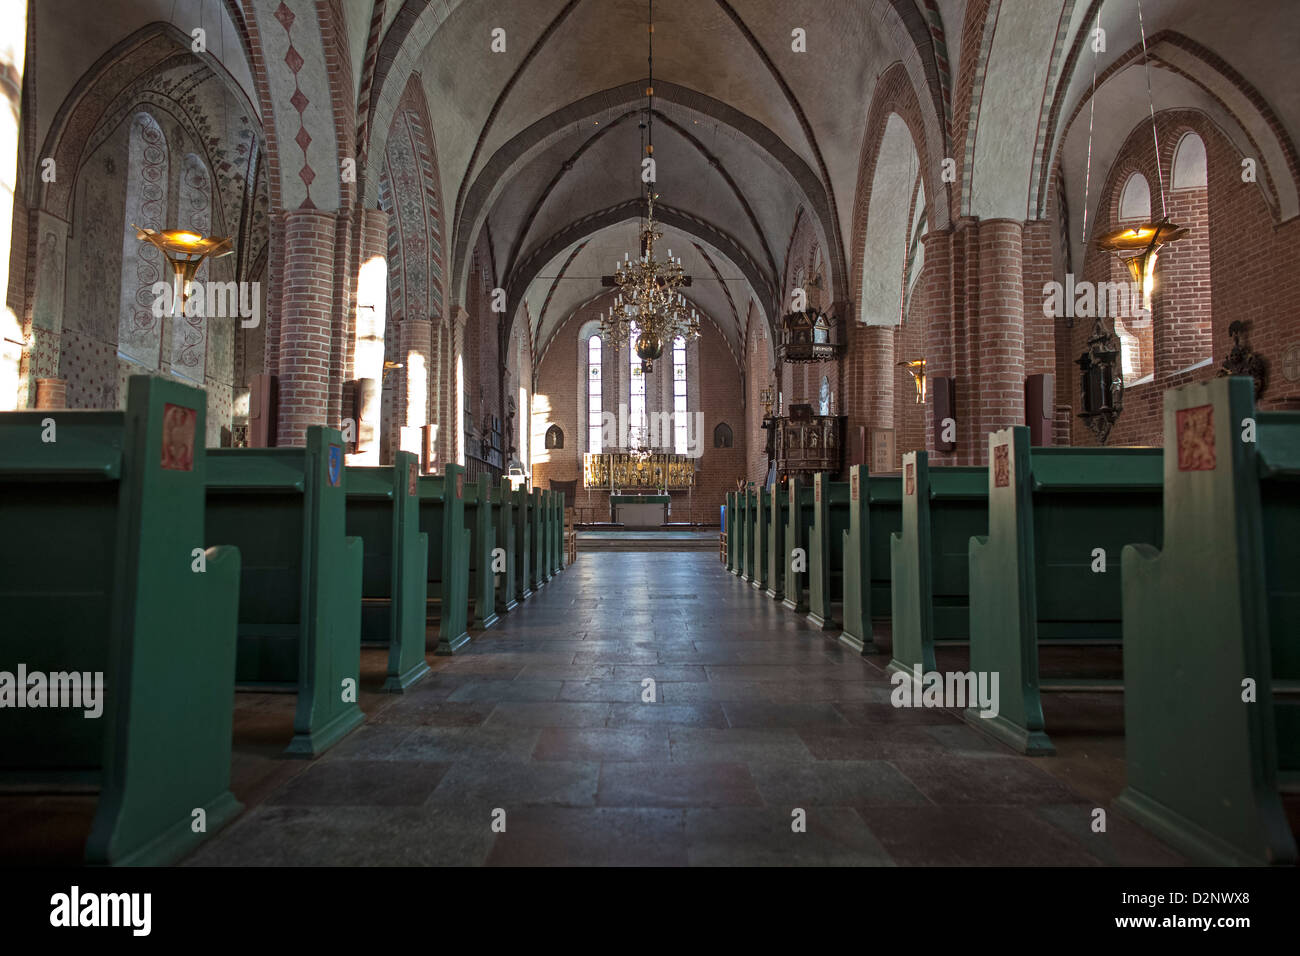 St. Mary's Church (Mariakyrkan) at Sigtuna, Sweden Stock Photo